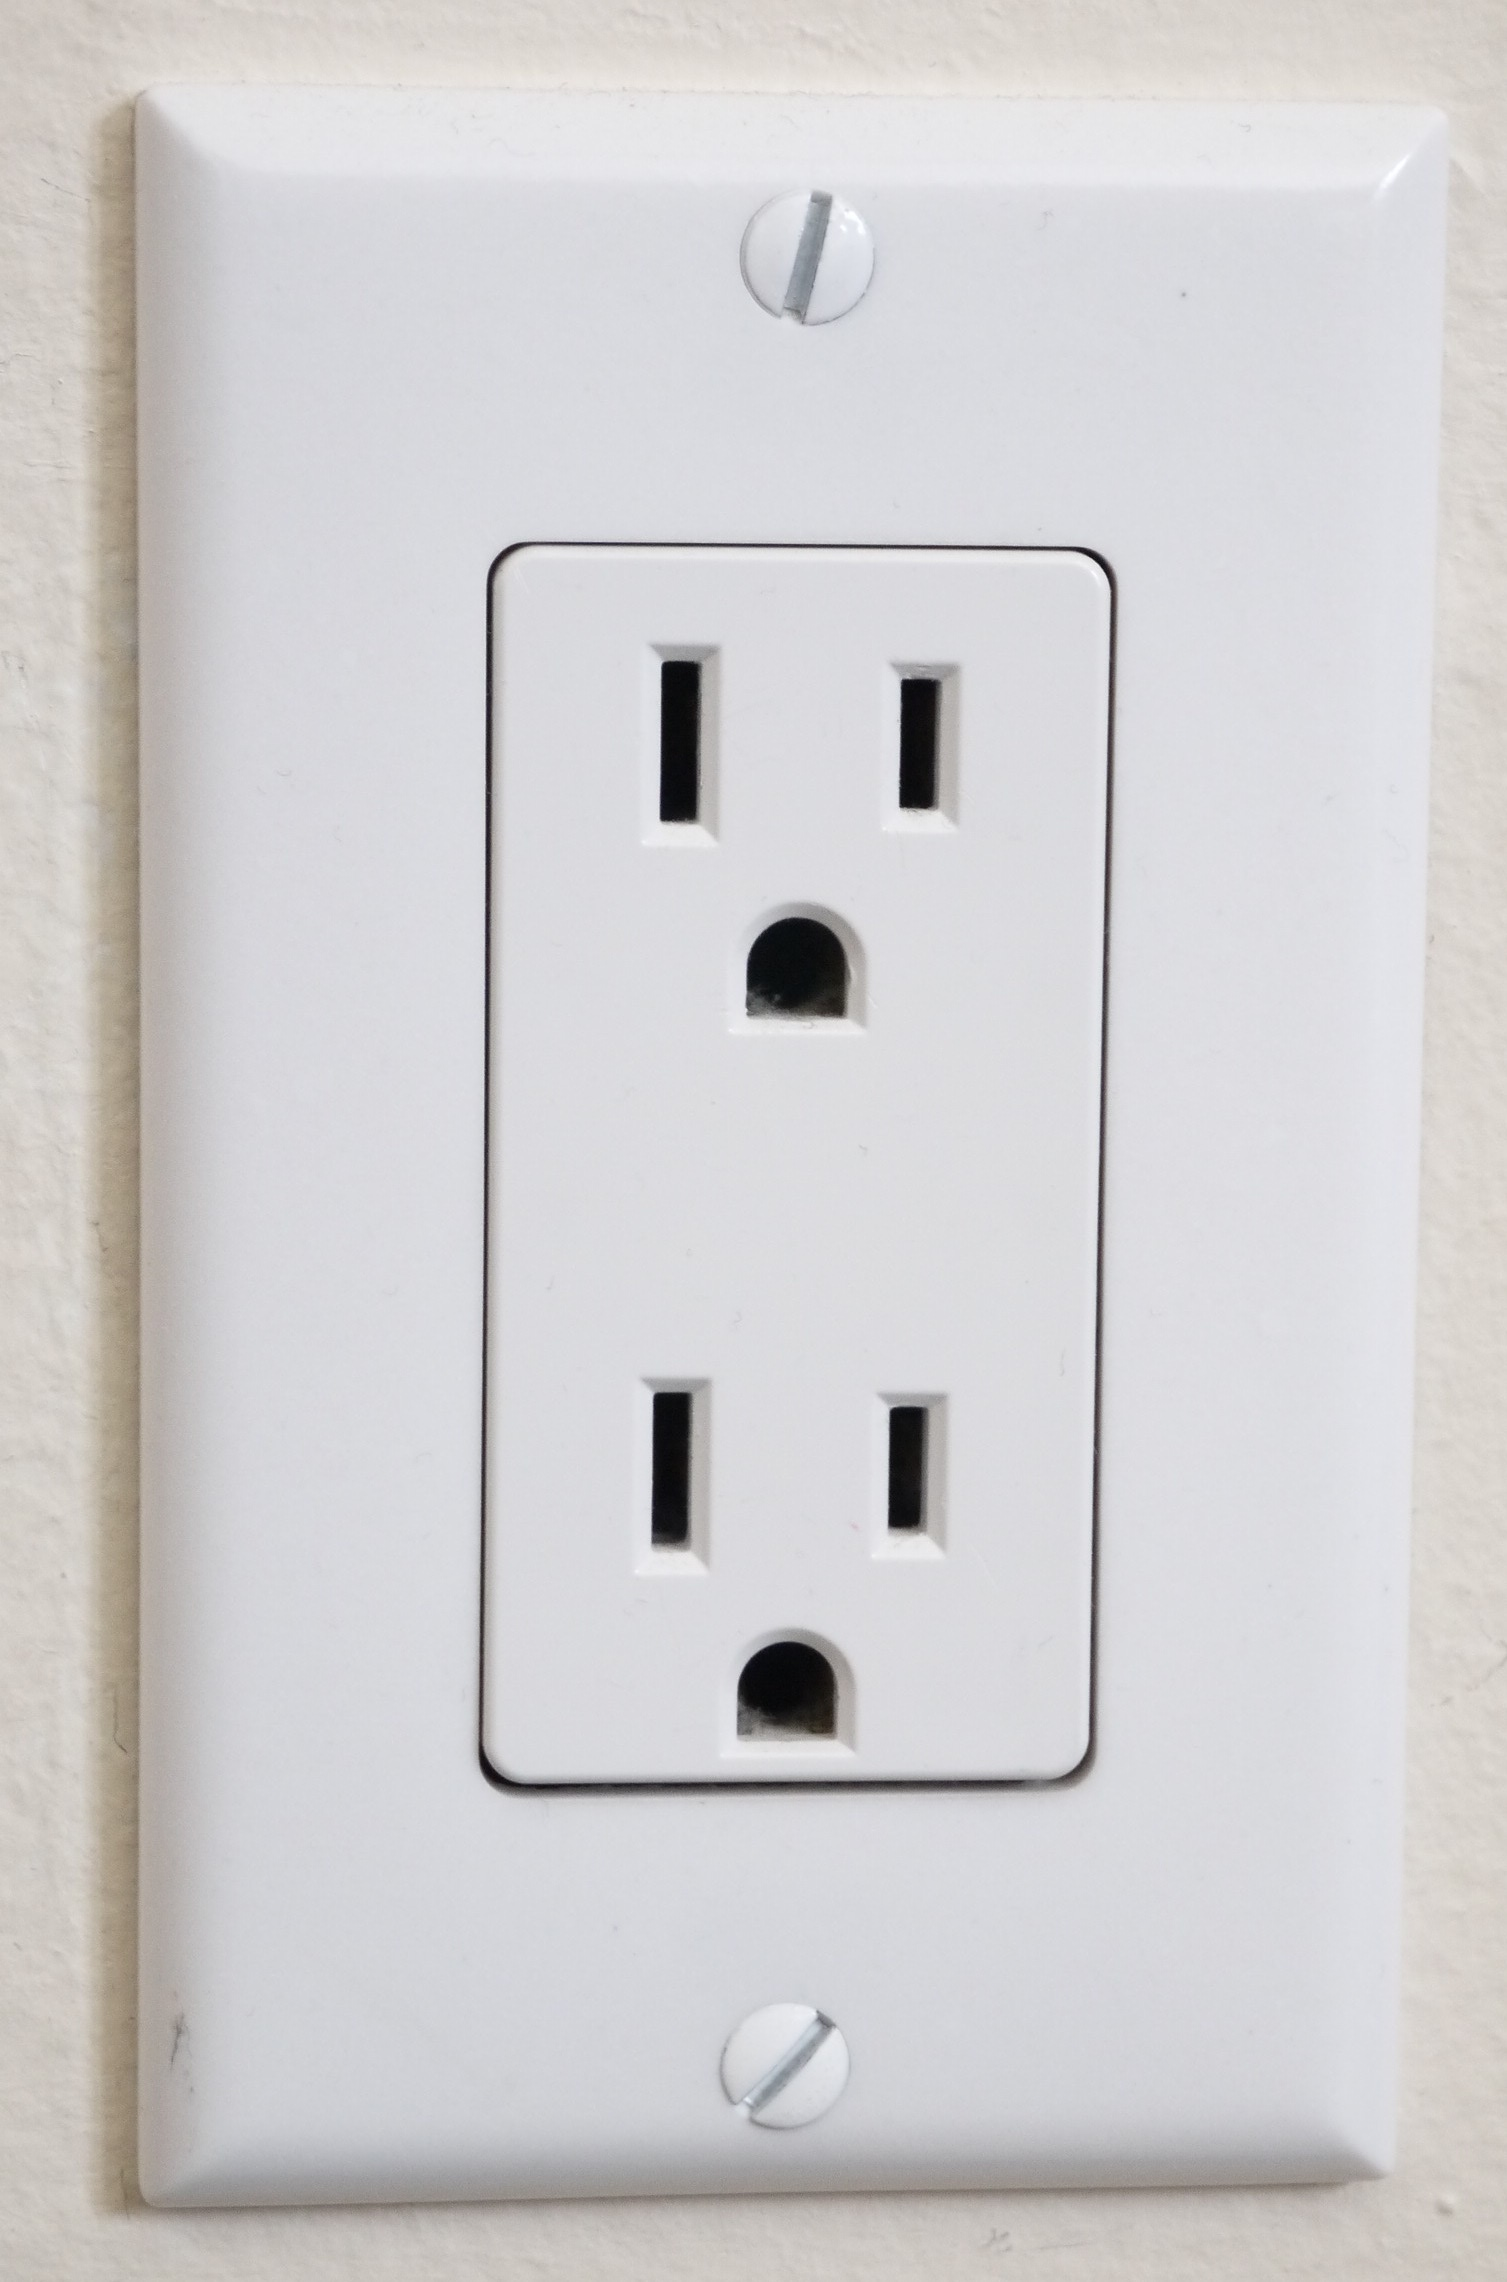 Replacing Your Wall Receptacle - Everon Electrical Contractors